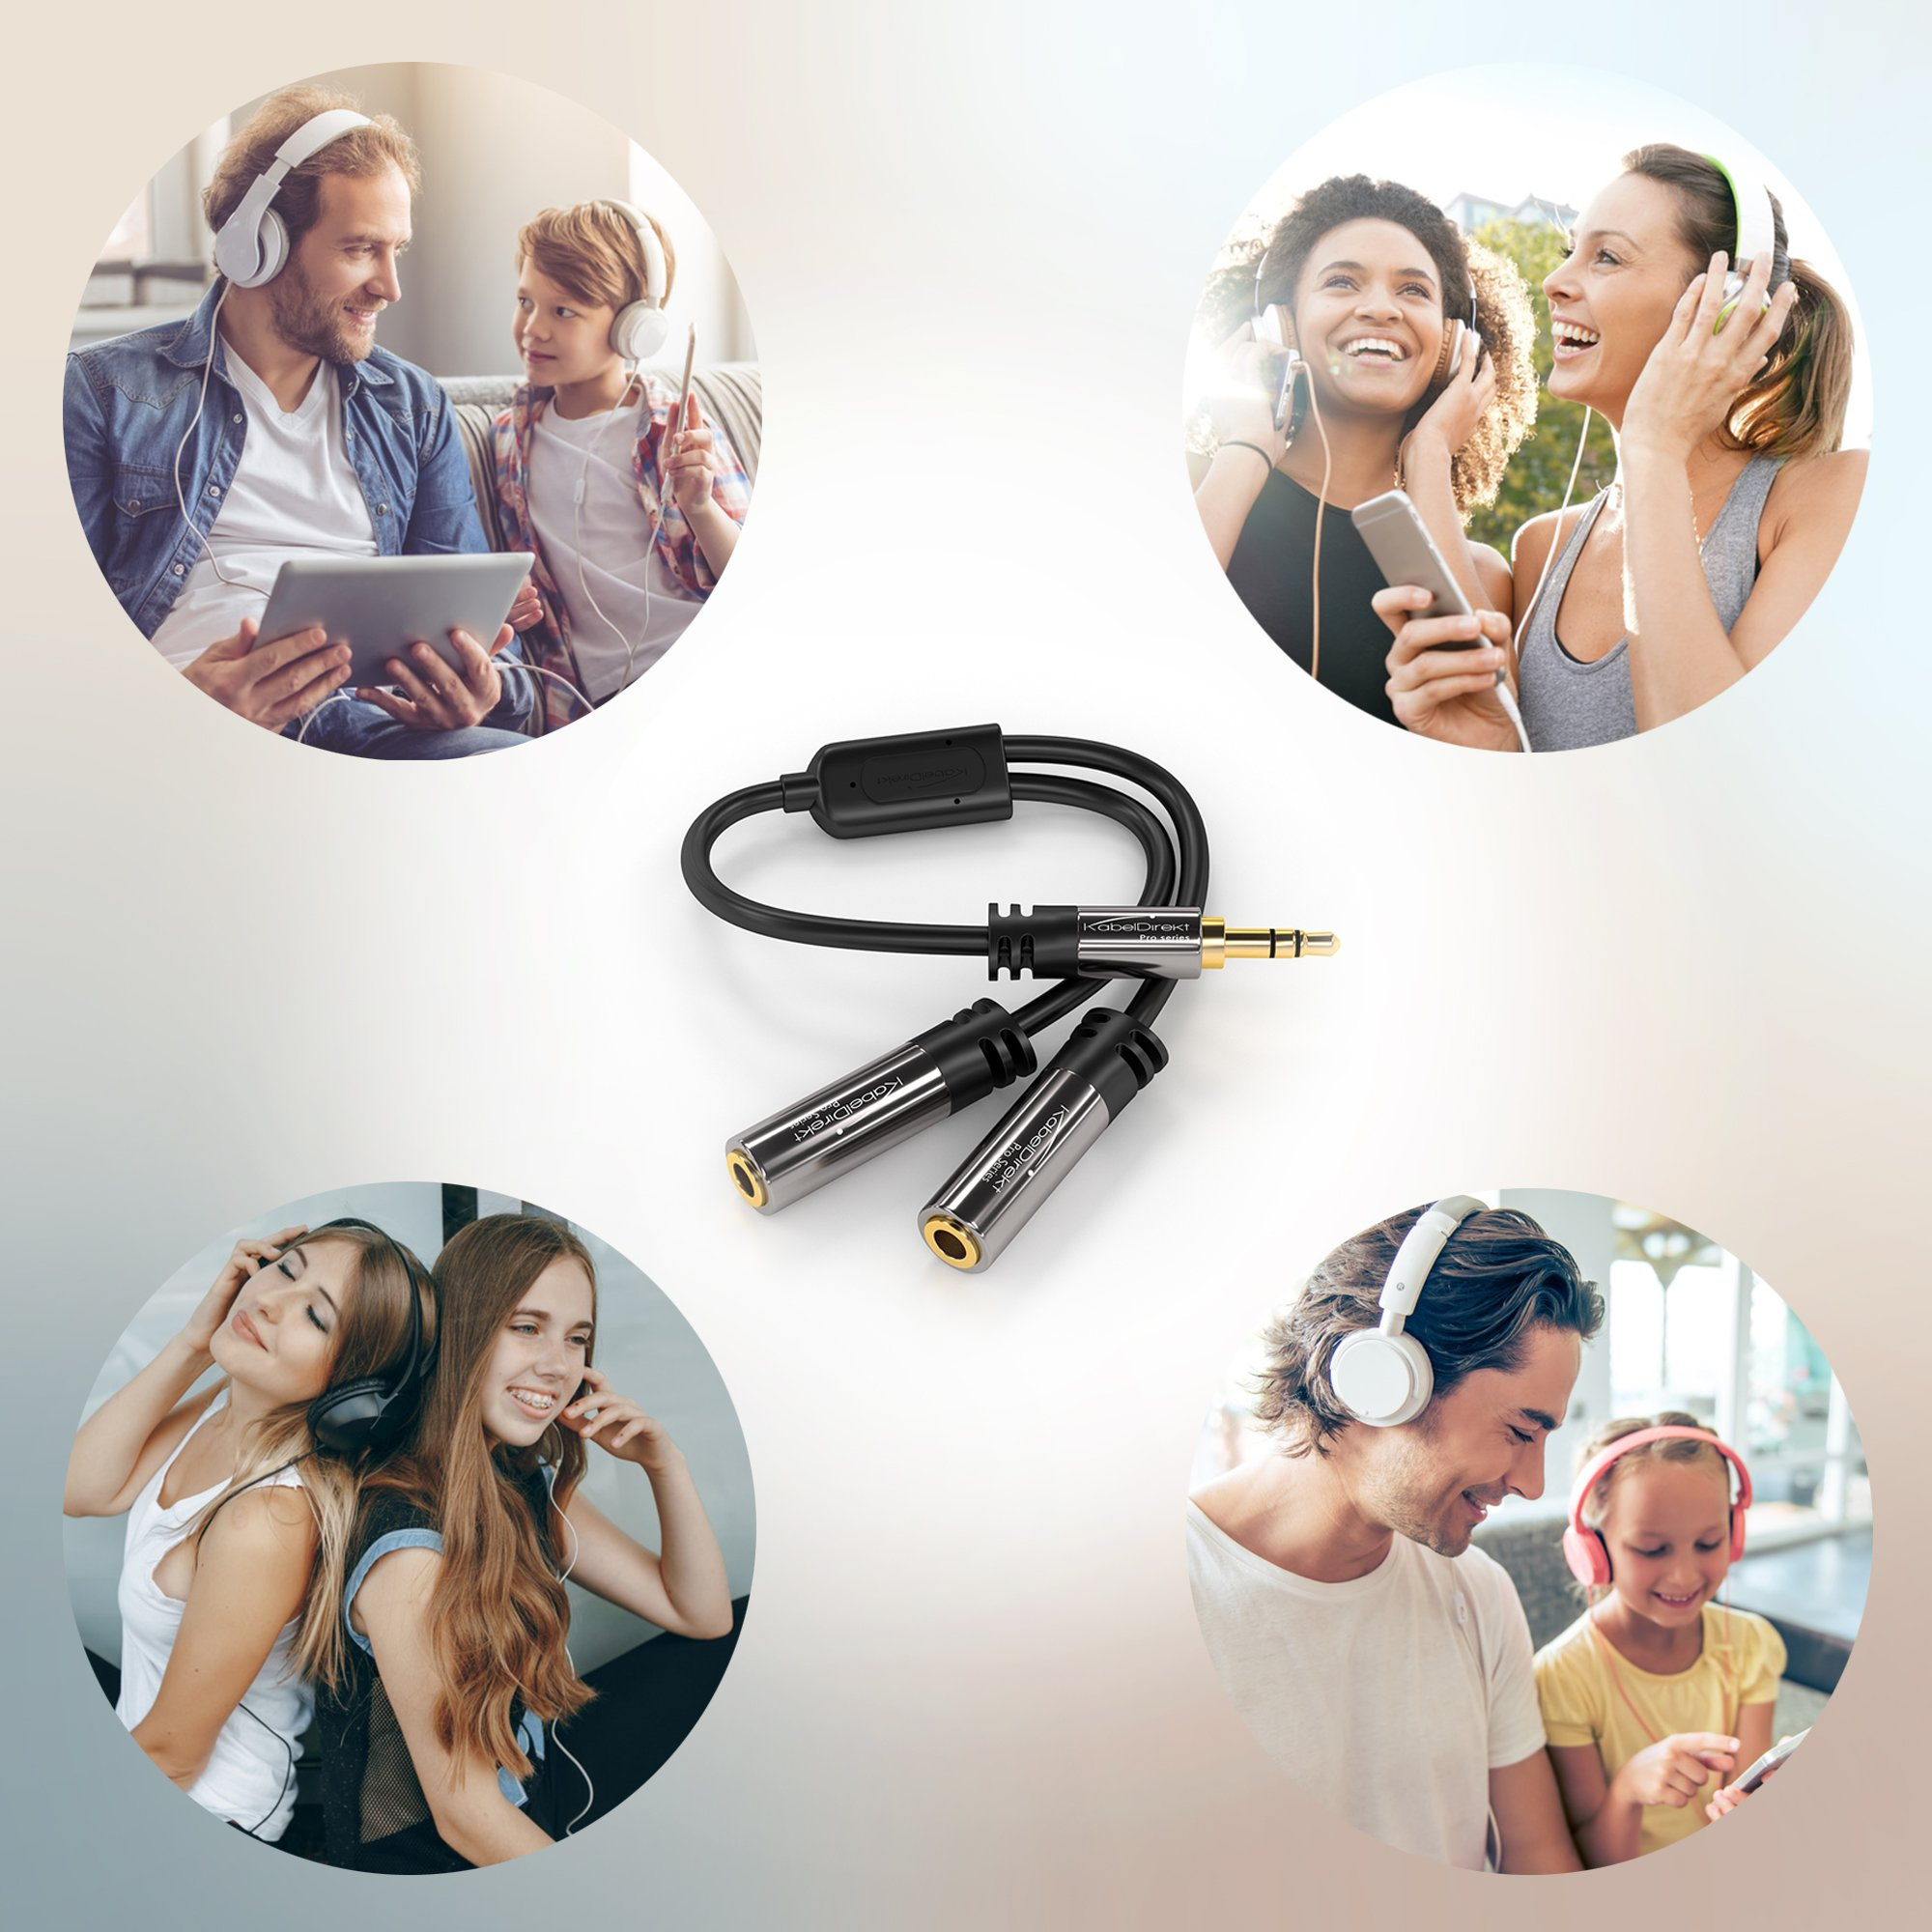 Y Stereo Splitter (1 x 3.5mm Male to 2 x 3.5mm Female, PRO Series) supports (Produces Equal Audio Output for Headphones, Earphones, and Speakers) by KabelDirekt